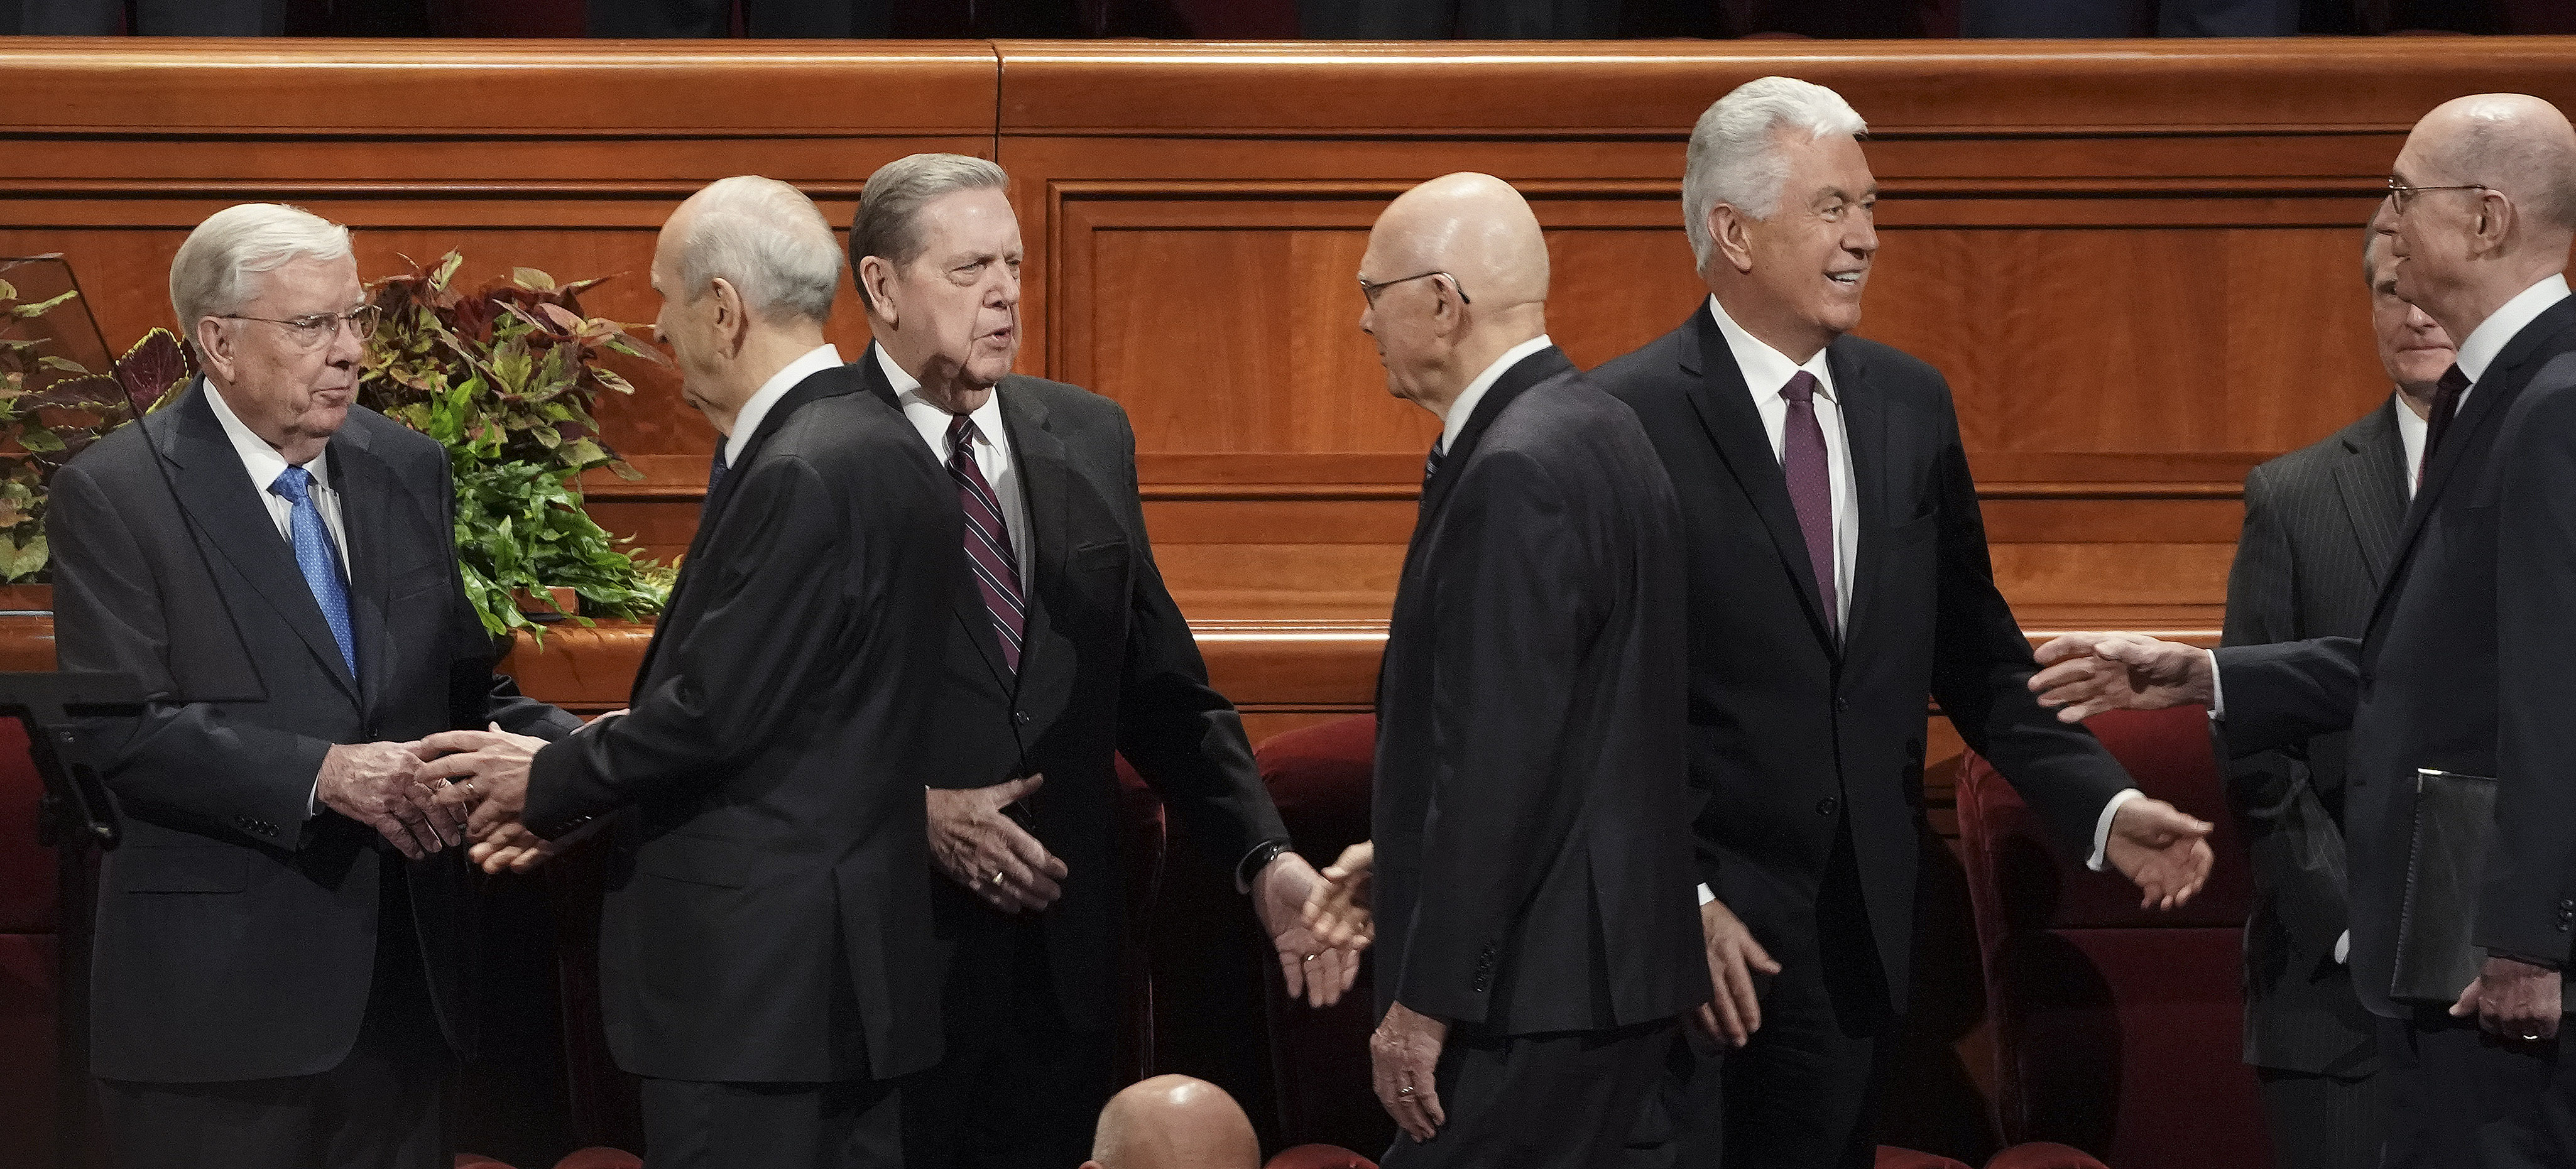 President Russell M. Nelson, left, and his counselors, President Dallin H. Oaks, first counselor in the First Presidency, center, and President Henry B. Eyring, second counselor in the First Presidency, right, greet fellow general authorities before the Sunday morning session of the 189th Semiannual General Conference of The Church of Jesus Christ of Latter-day Saints in the Conference Center in Salt Lake City on Sunday, Oct. 6, 2019.